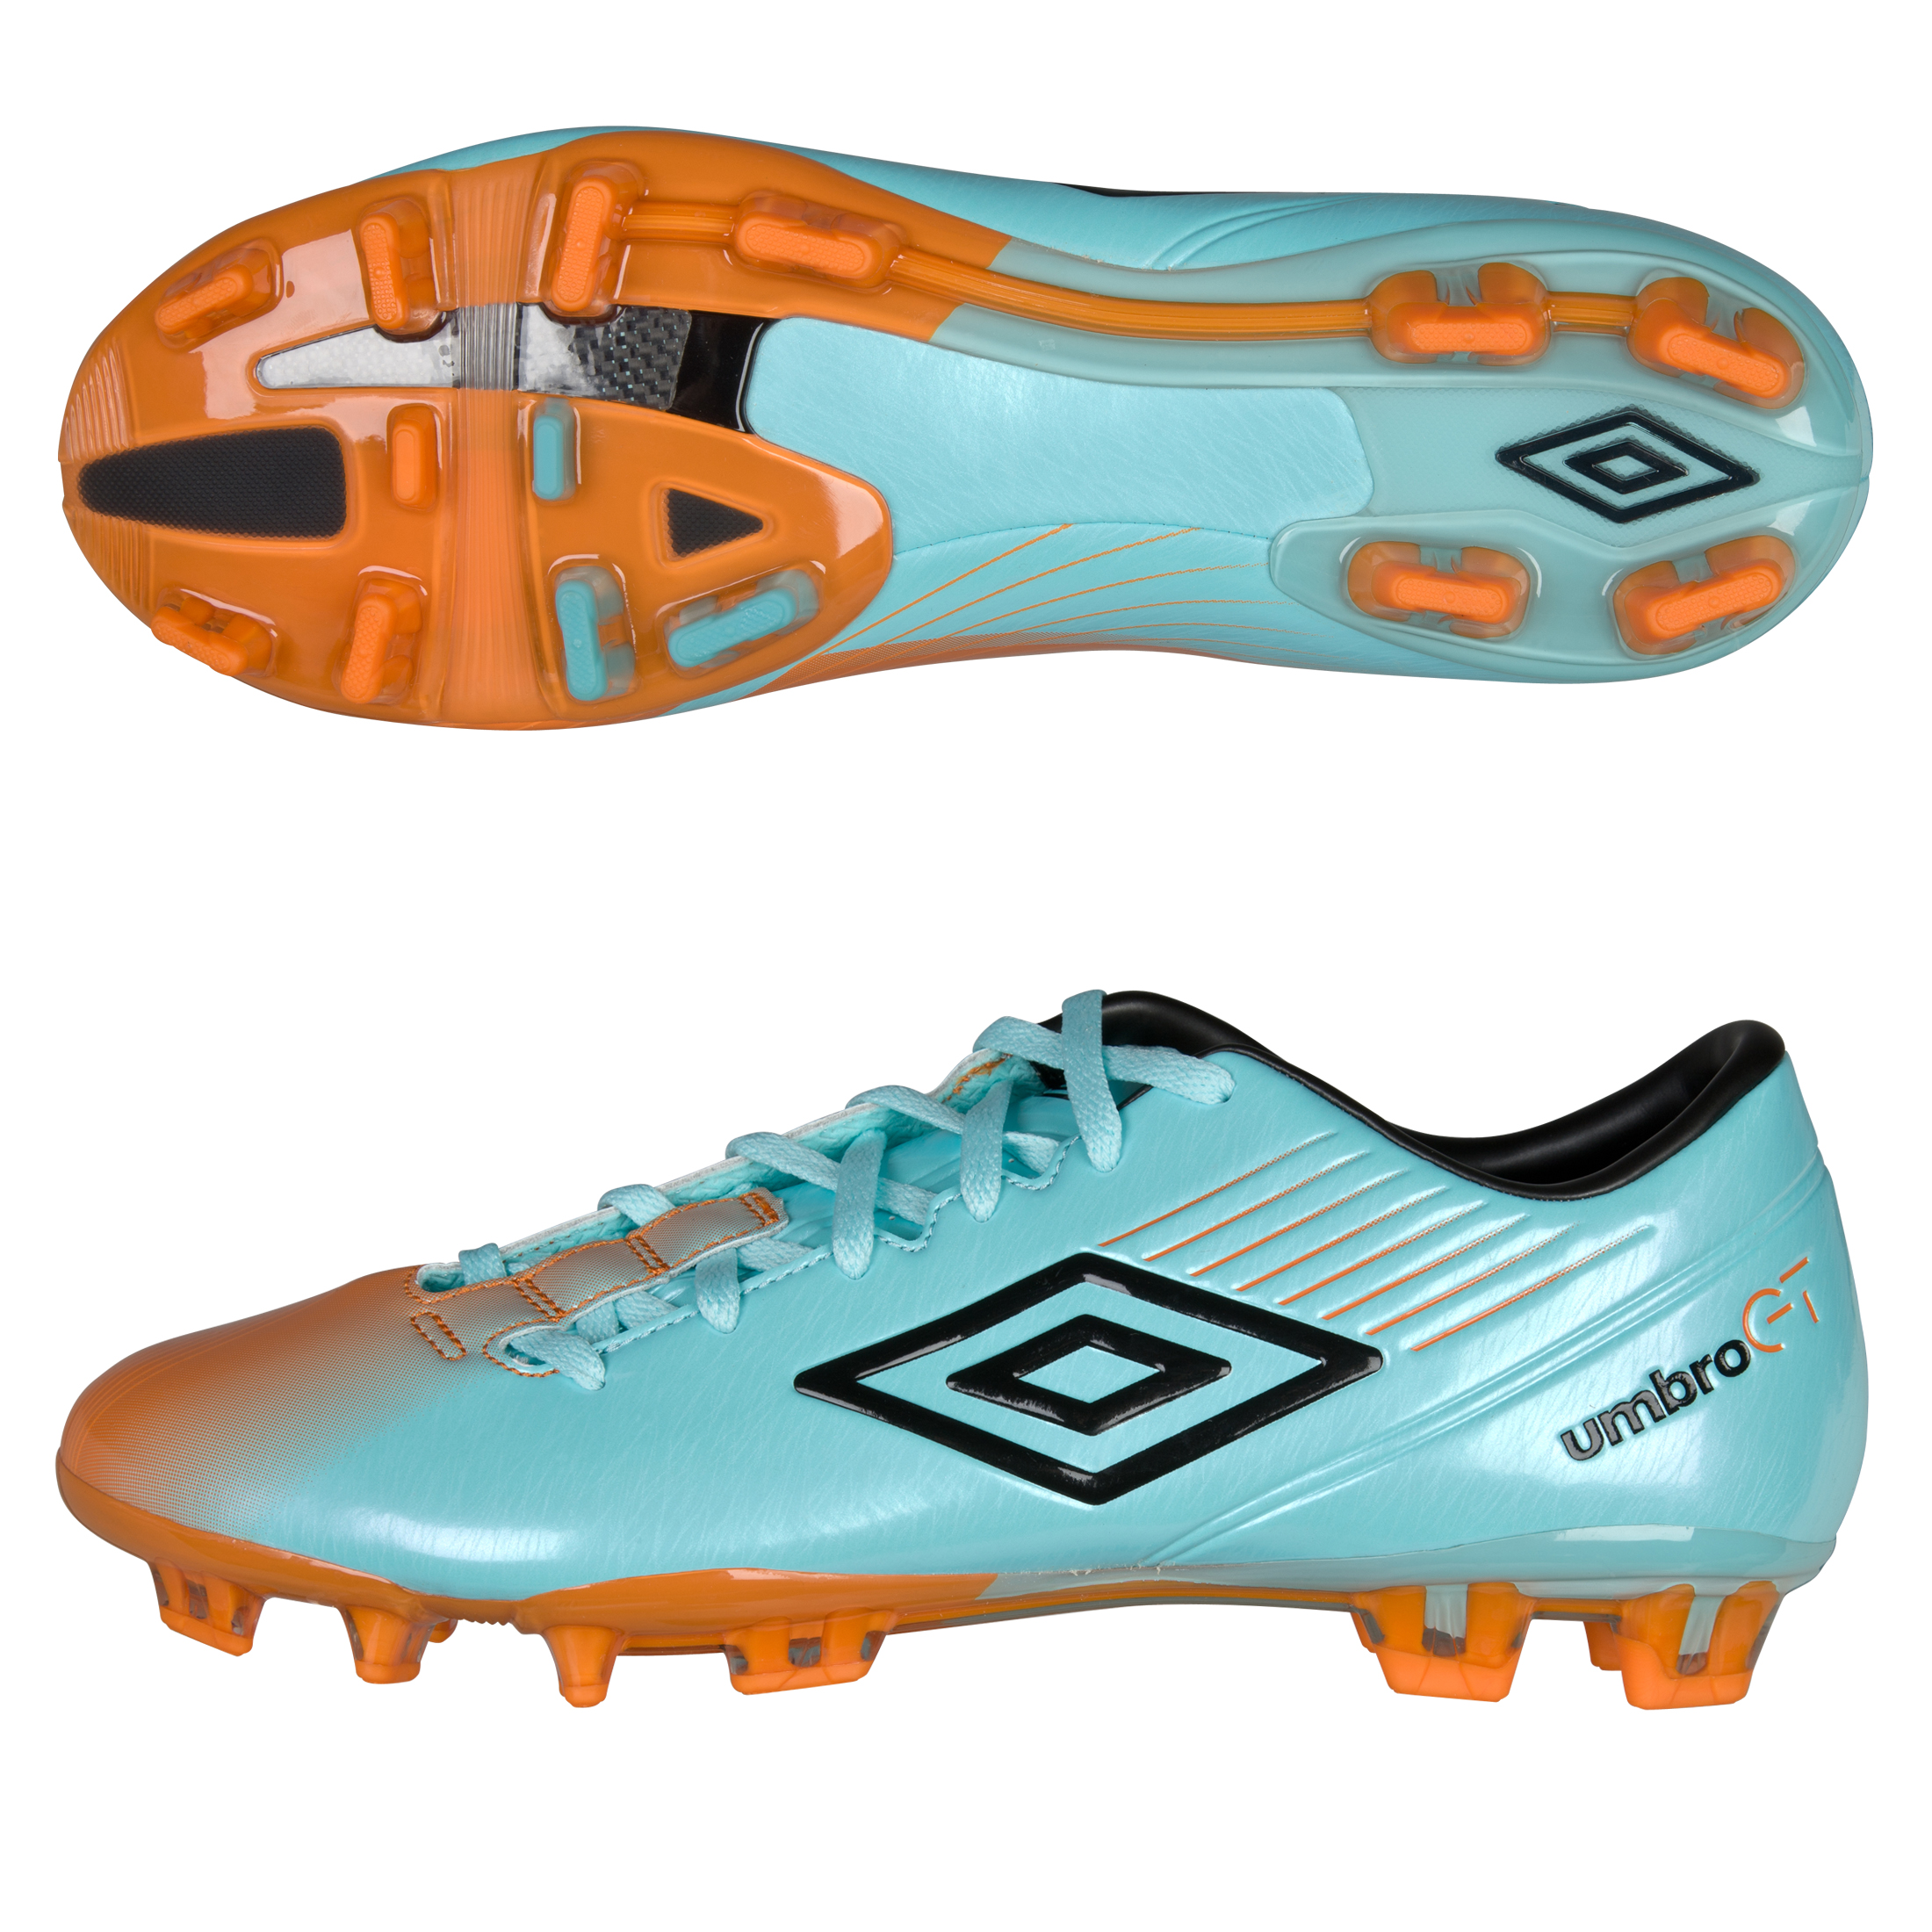 Umbro Gt II Pro-A Fg - Blue Radiance / Black / Orange Popsicle